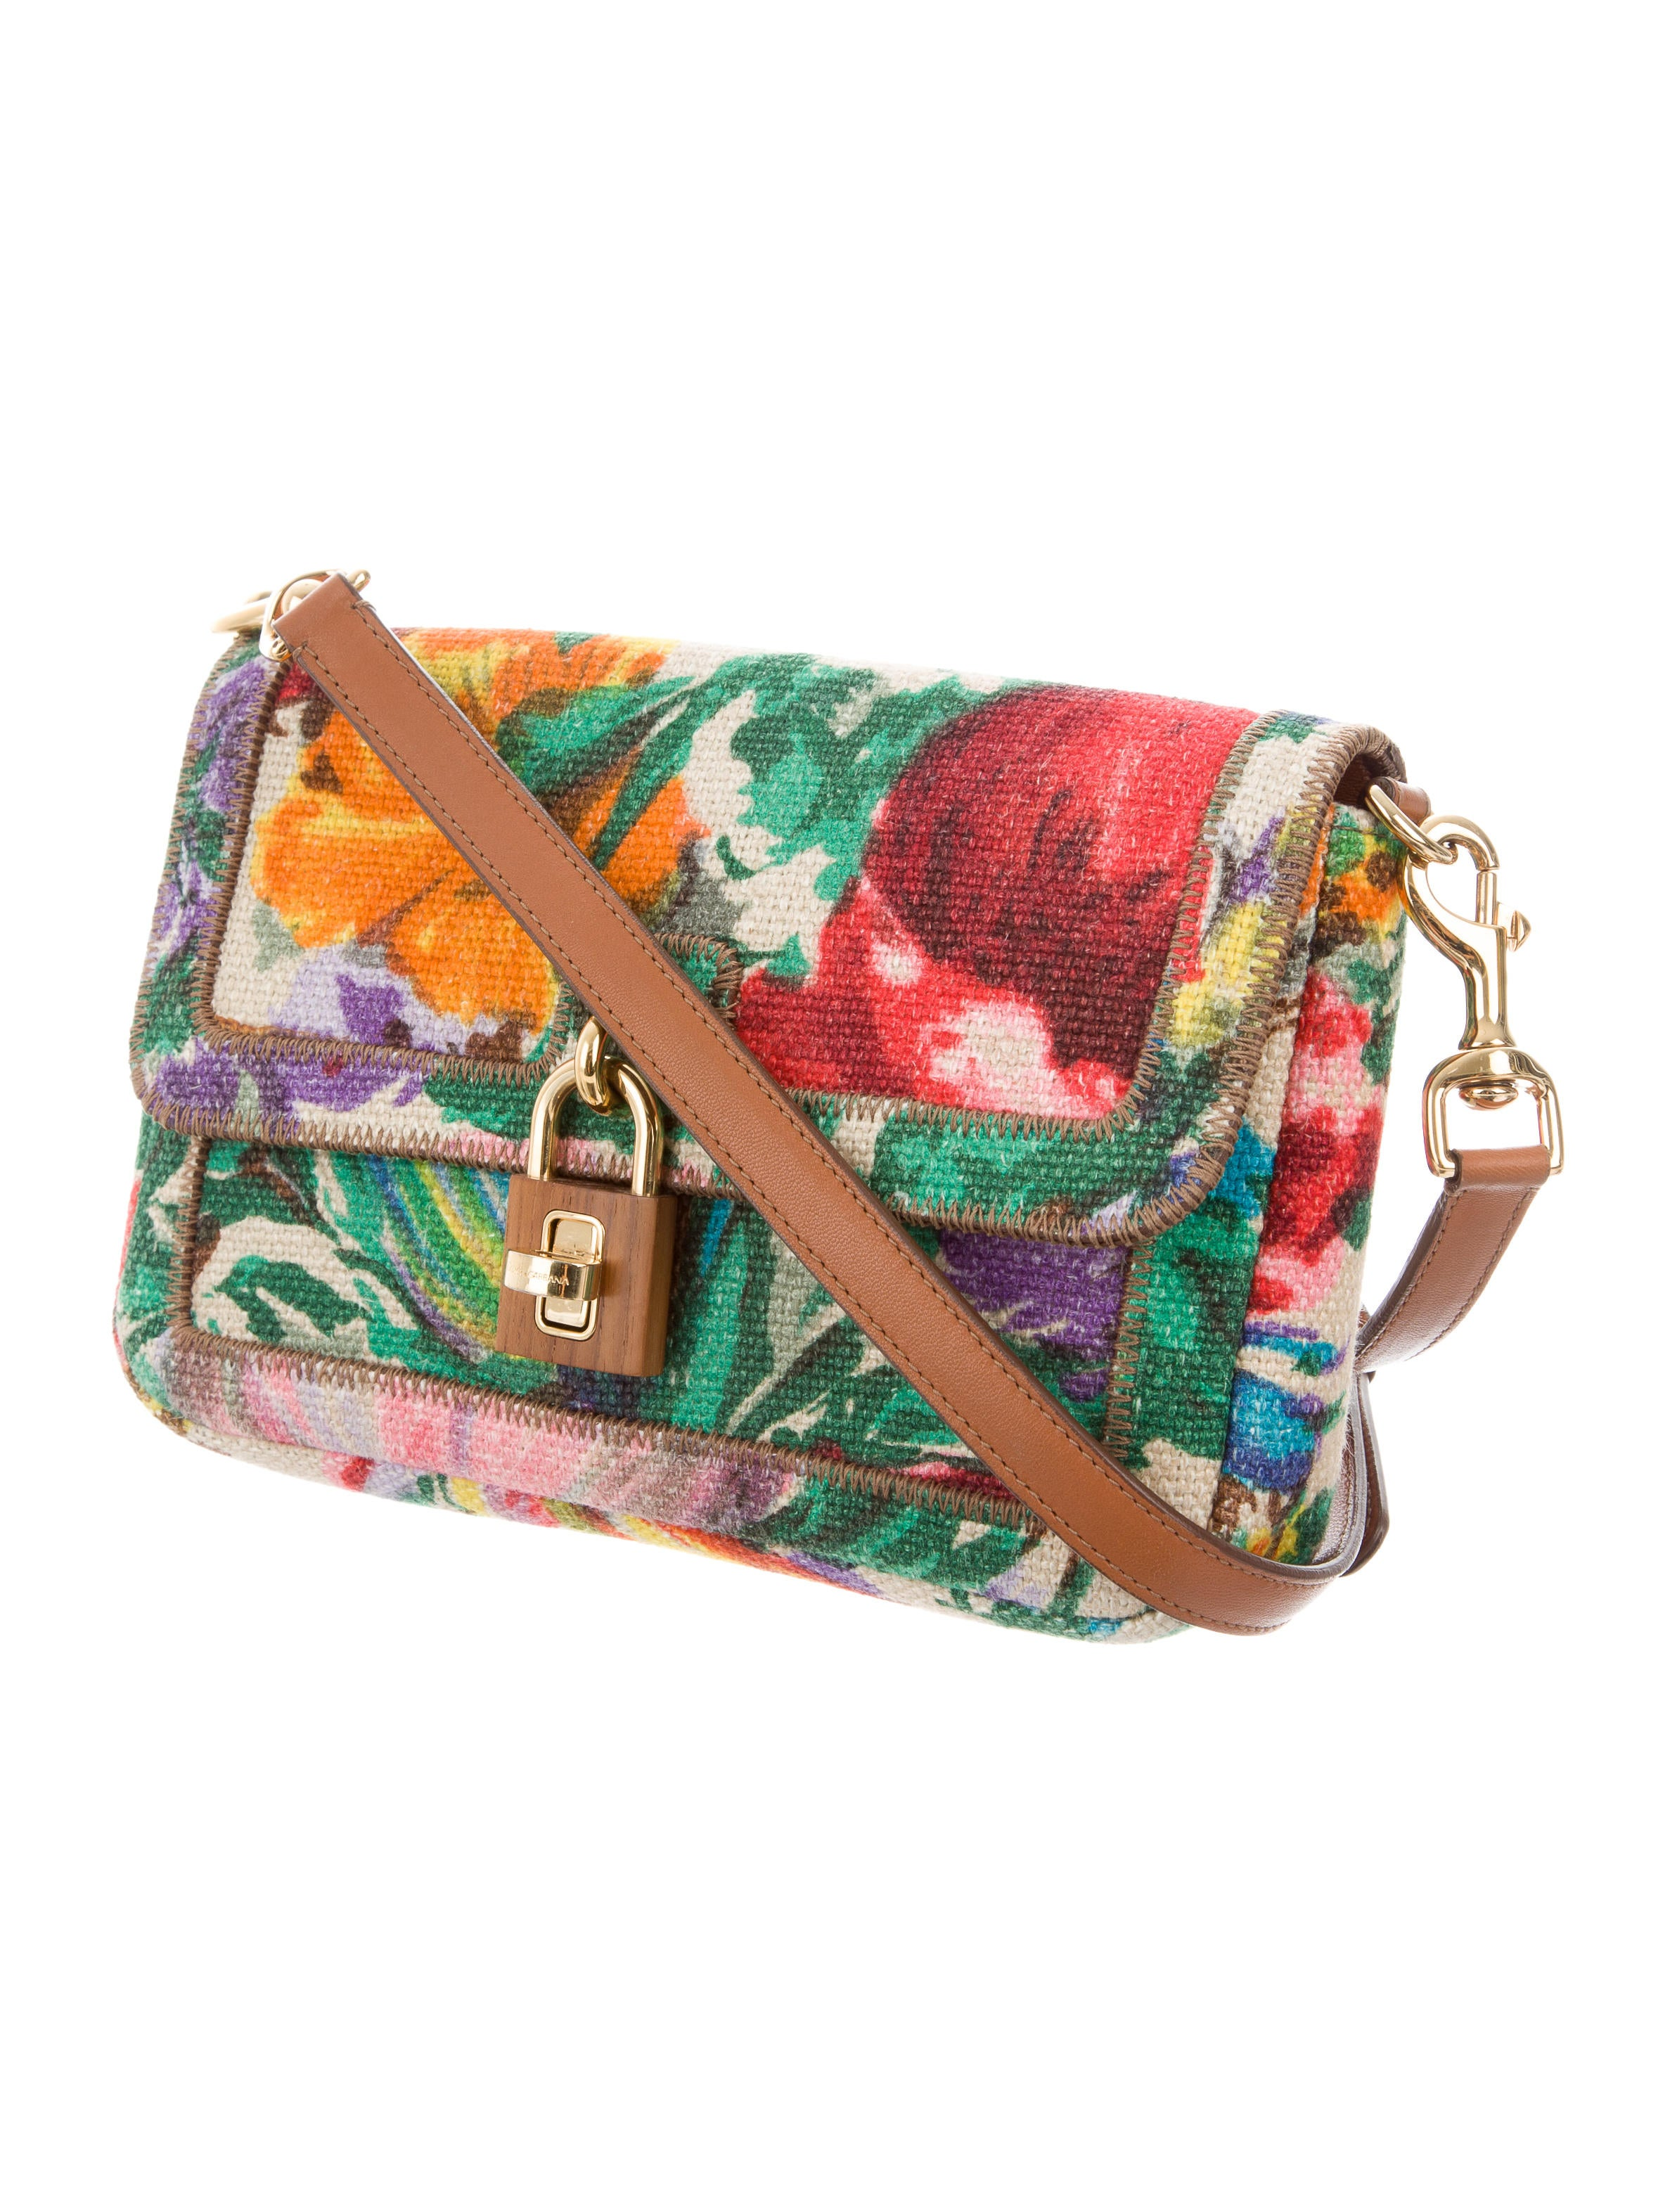 Dolce U0026 Gabbana Floral Print Canvas Crossbody Bag - Handbags - DAG86634 | The RealReal